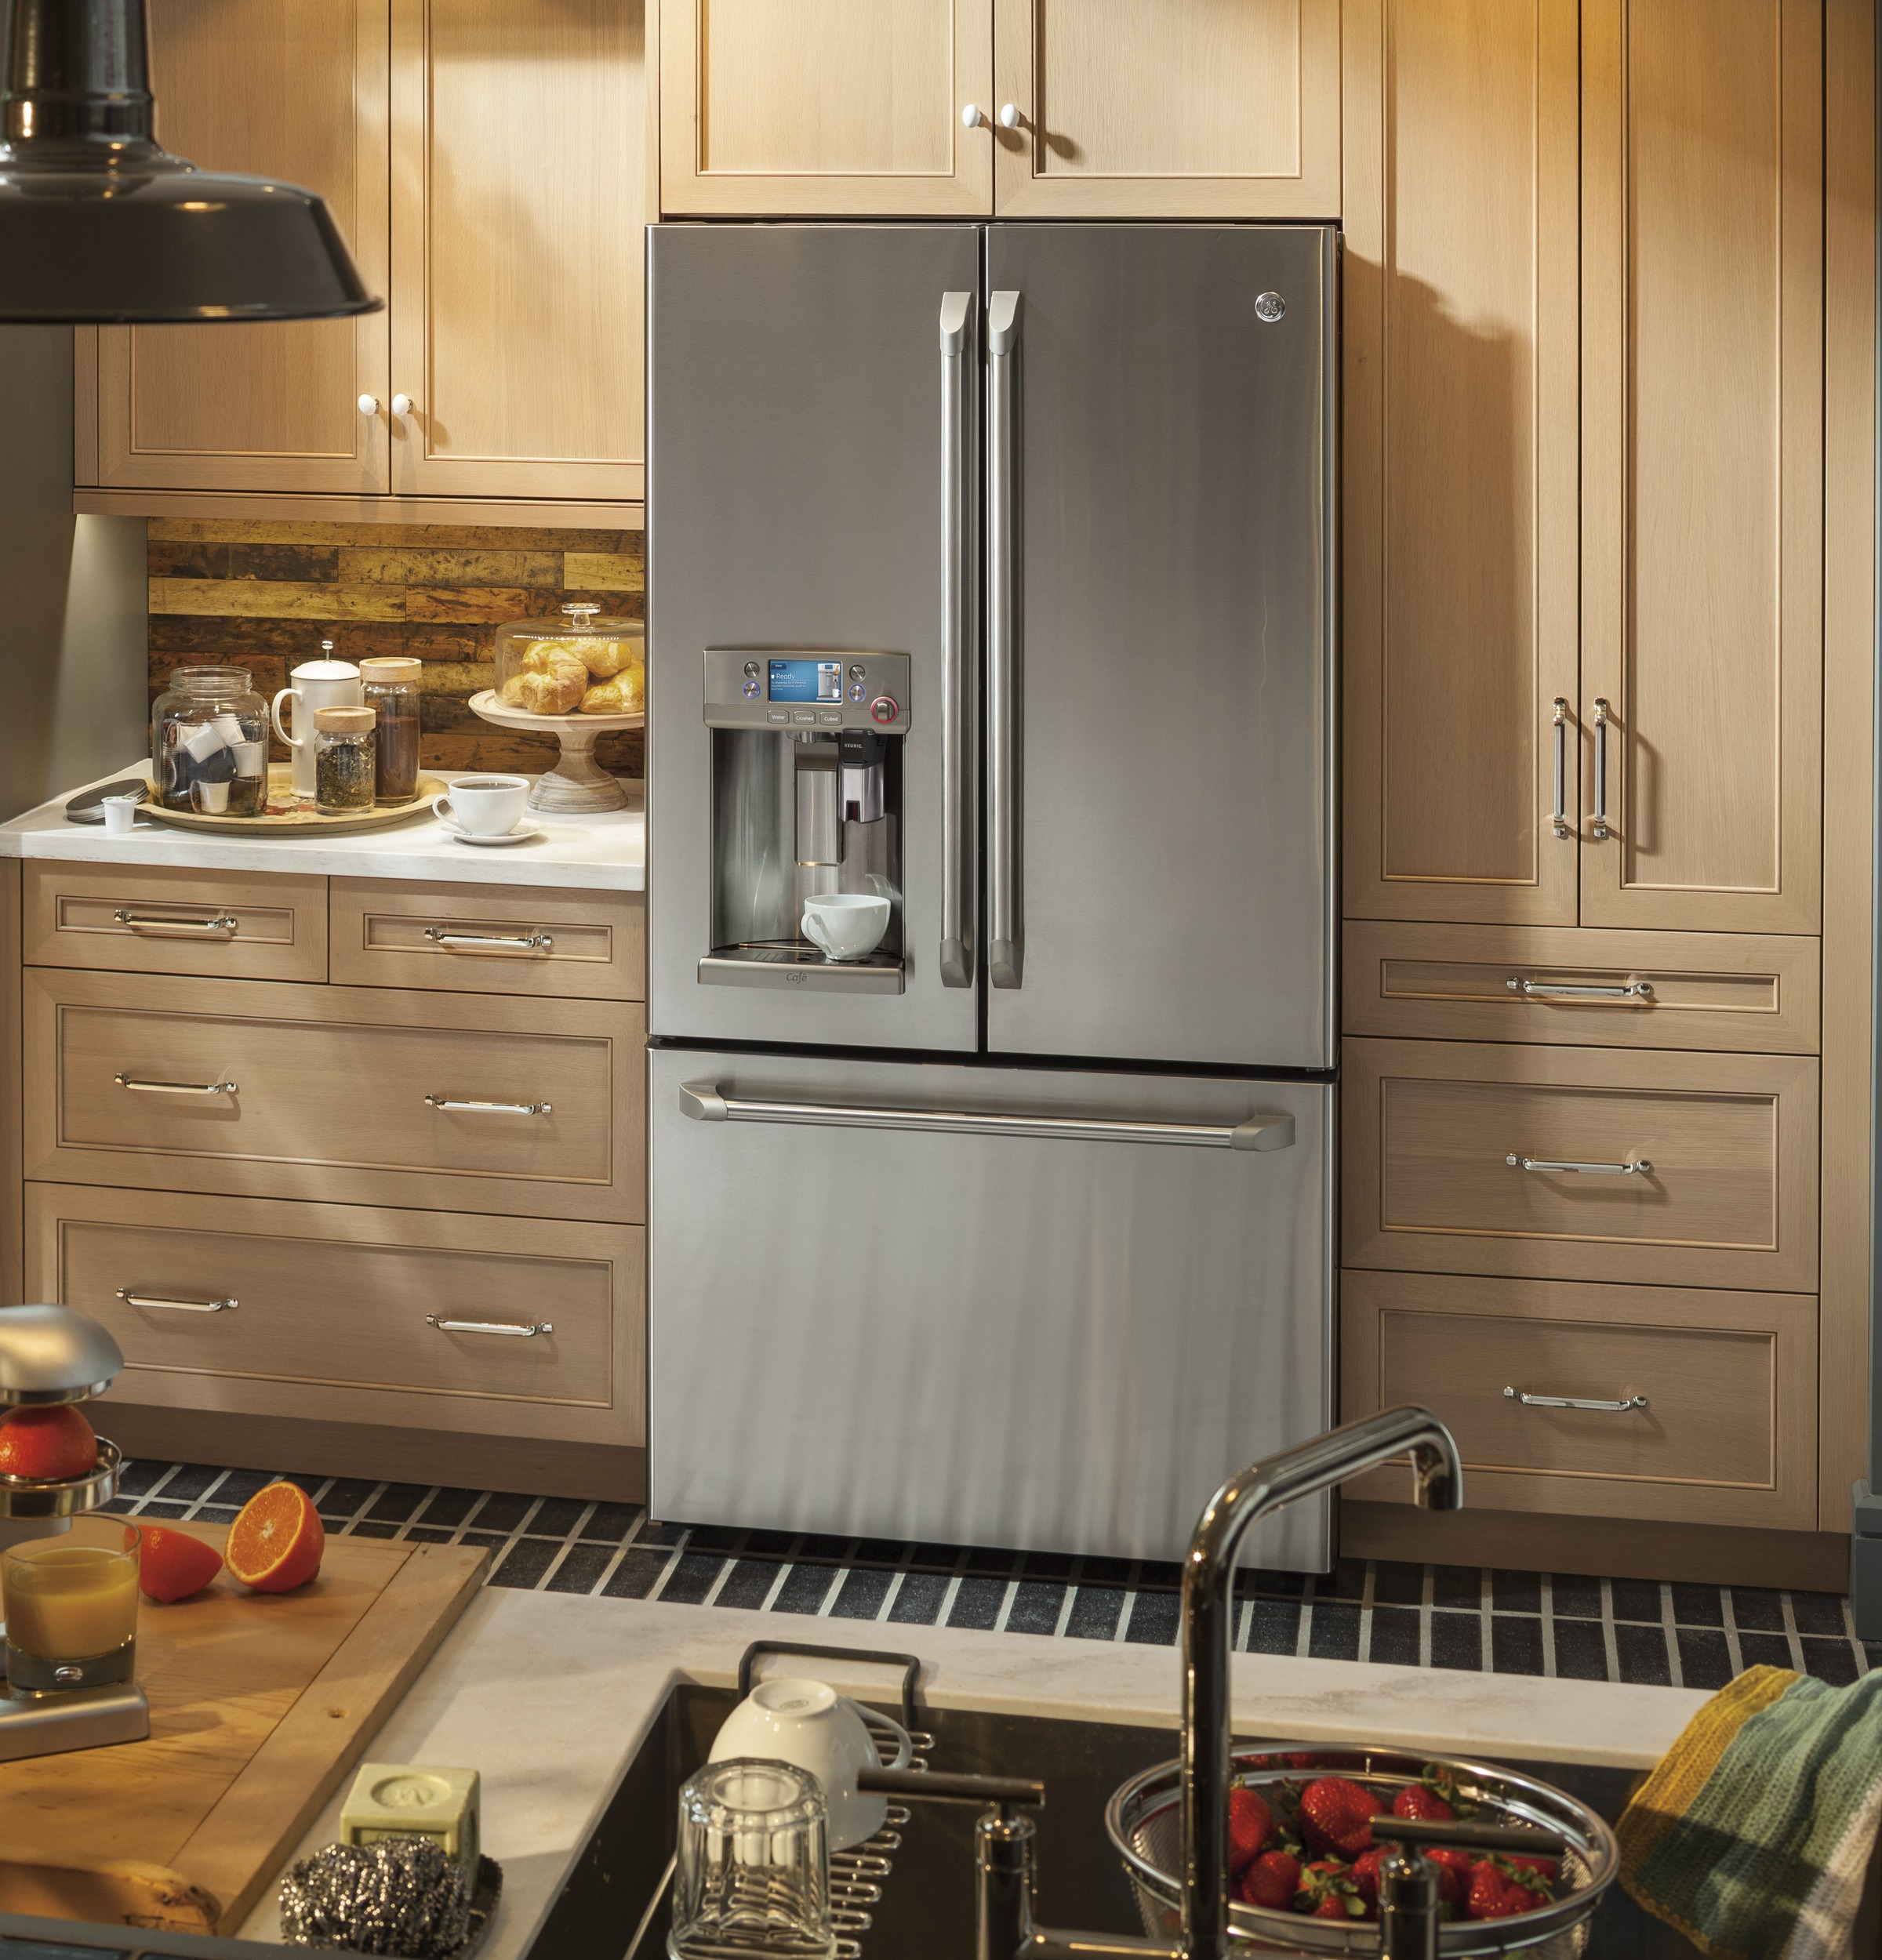 GE Café™ Series ENERGY STAR® 22.2 Cu. Ft. Counter Depth French